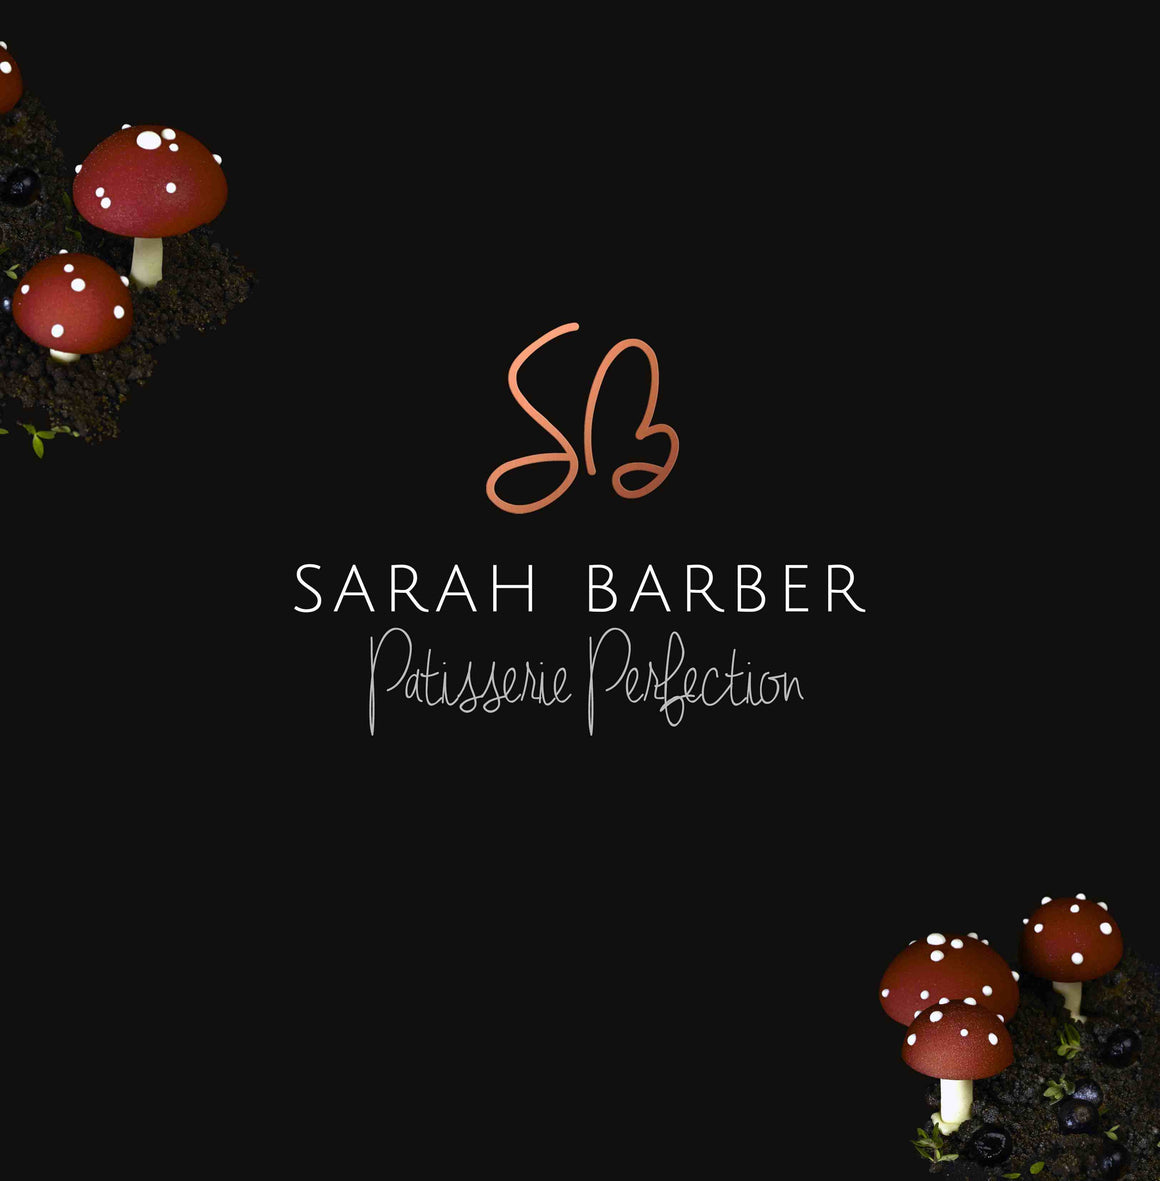 Patisserie Perfection by Sarah Barber